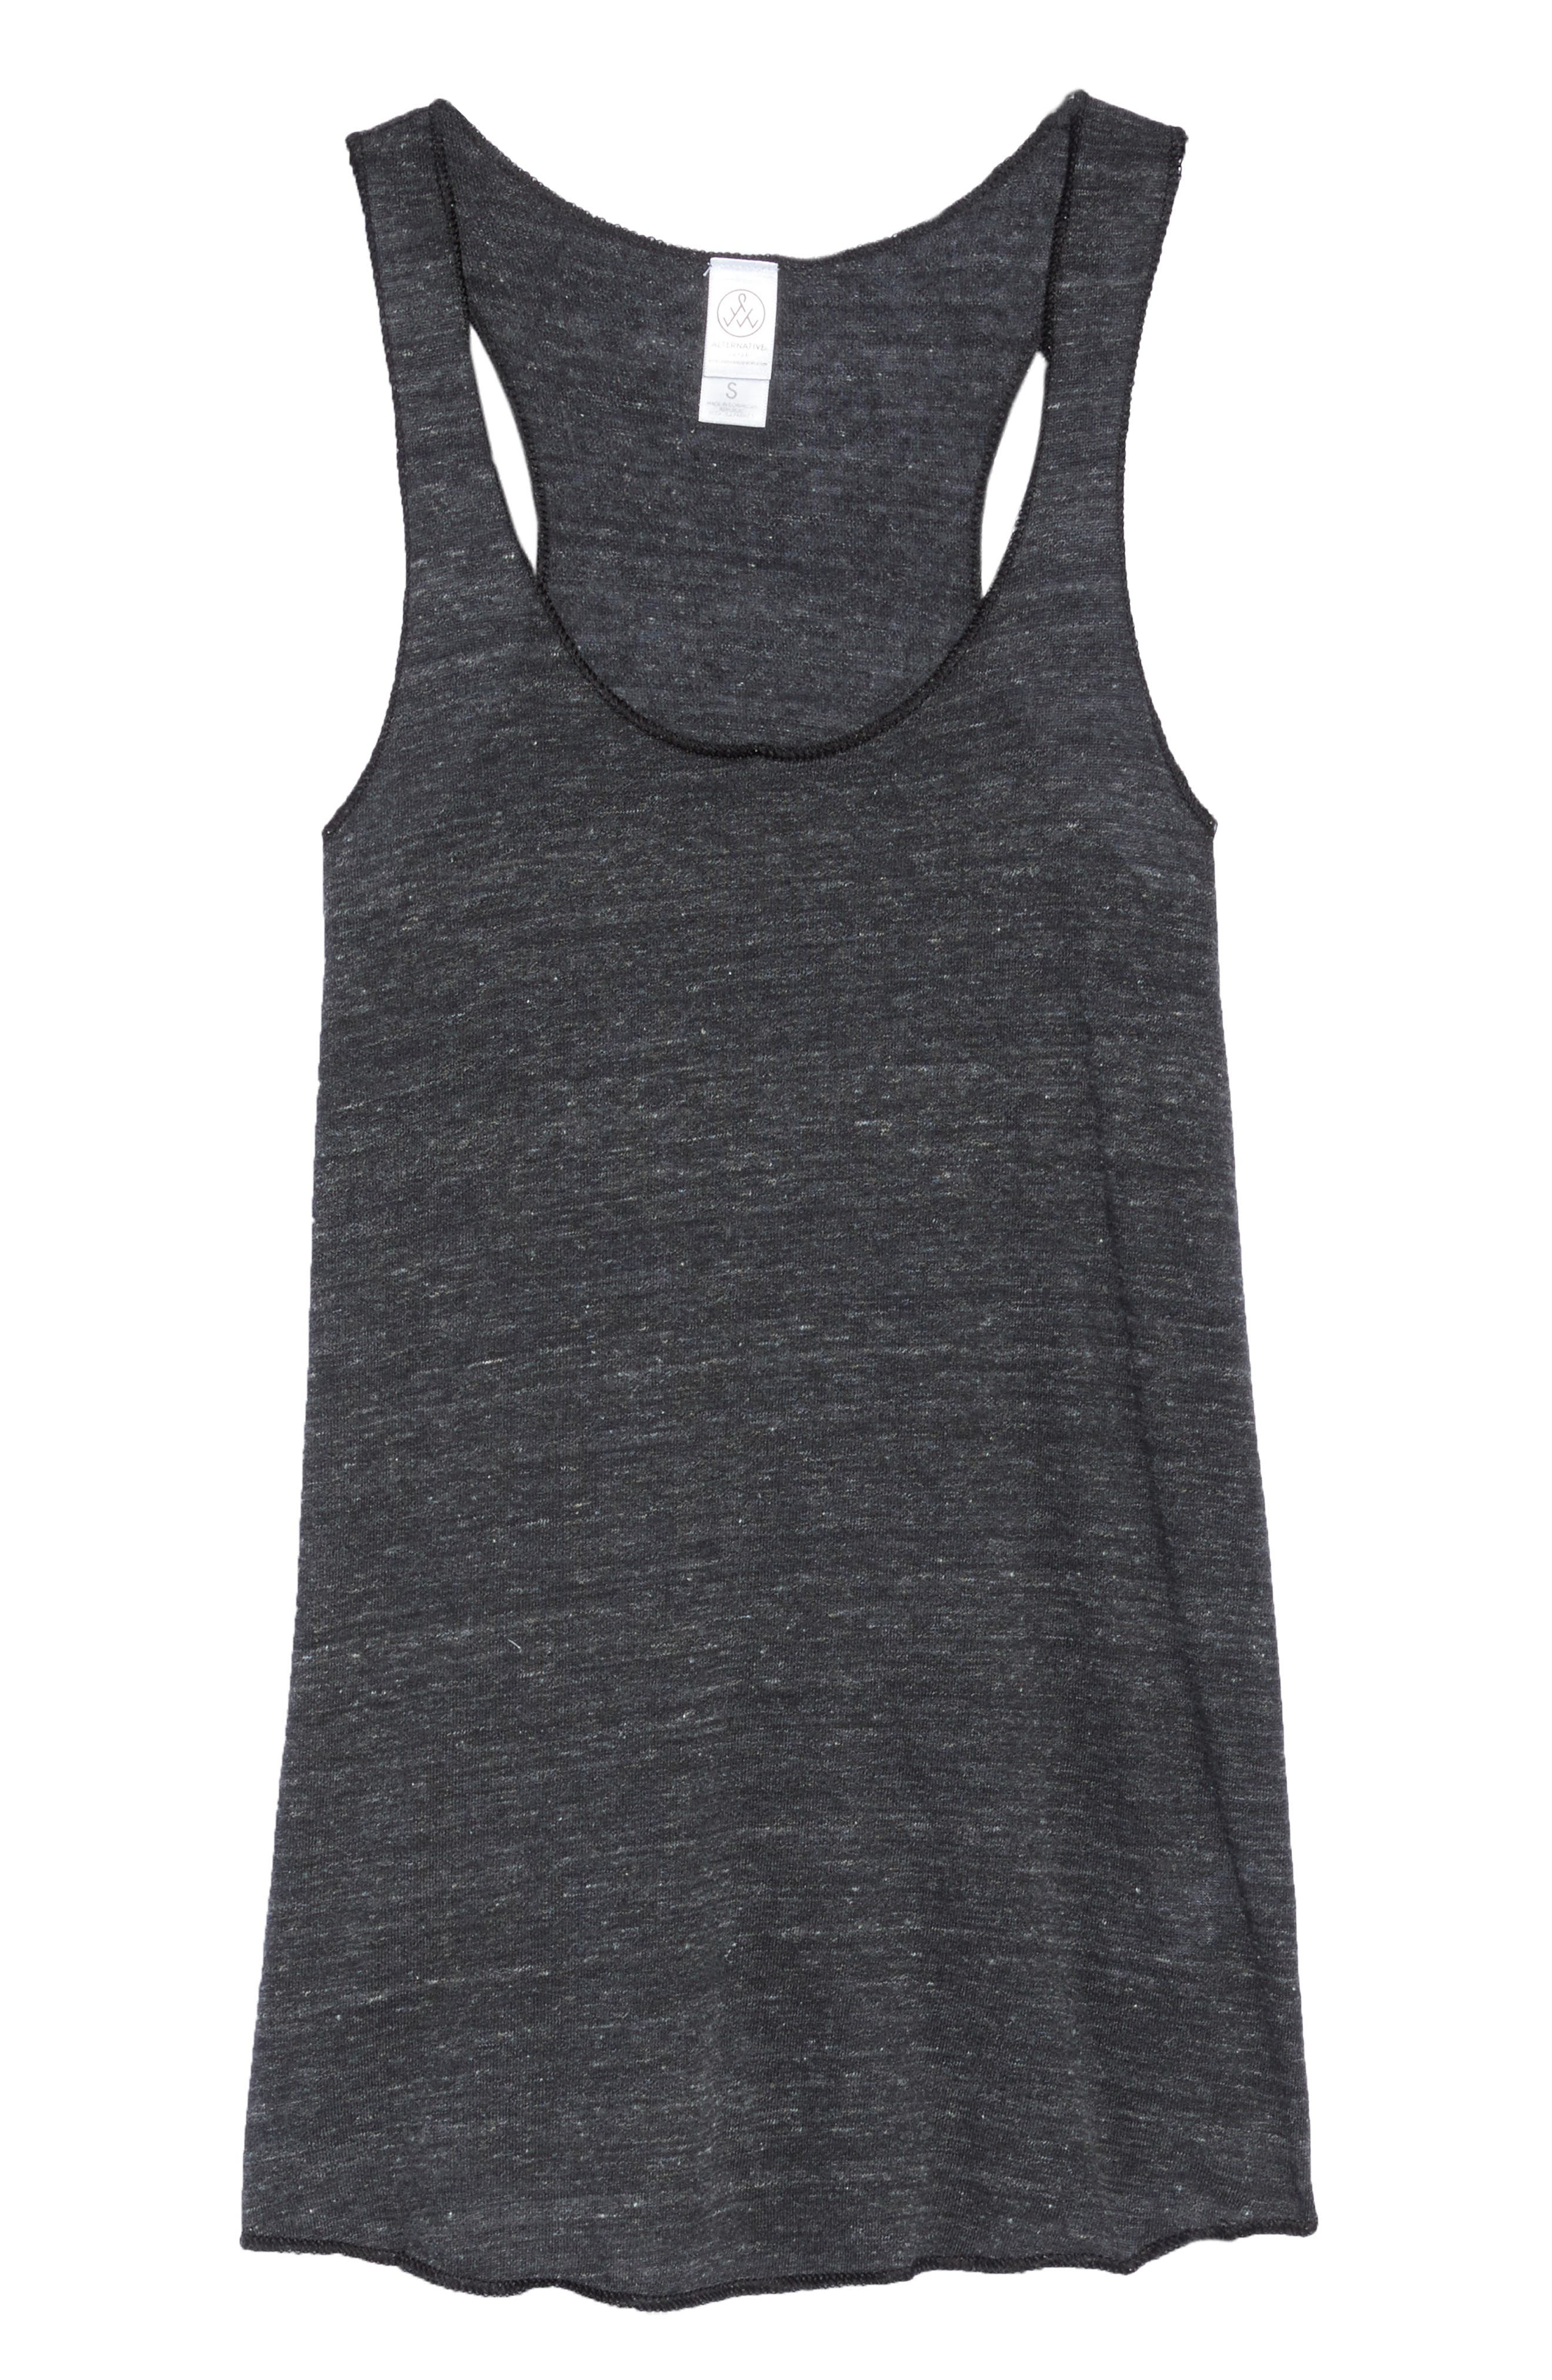 Meegs Racerback Tank,                             Alternate thumbnail 6, color,                             009